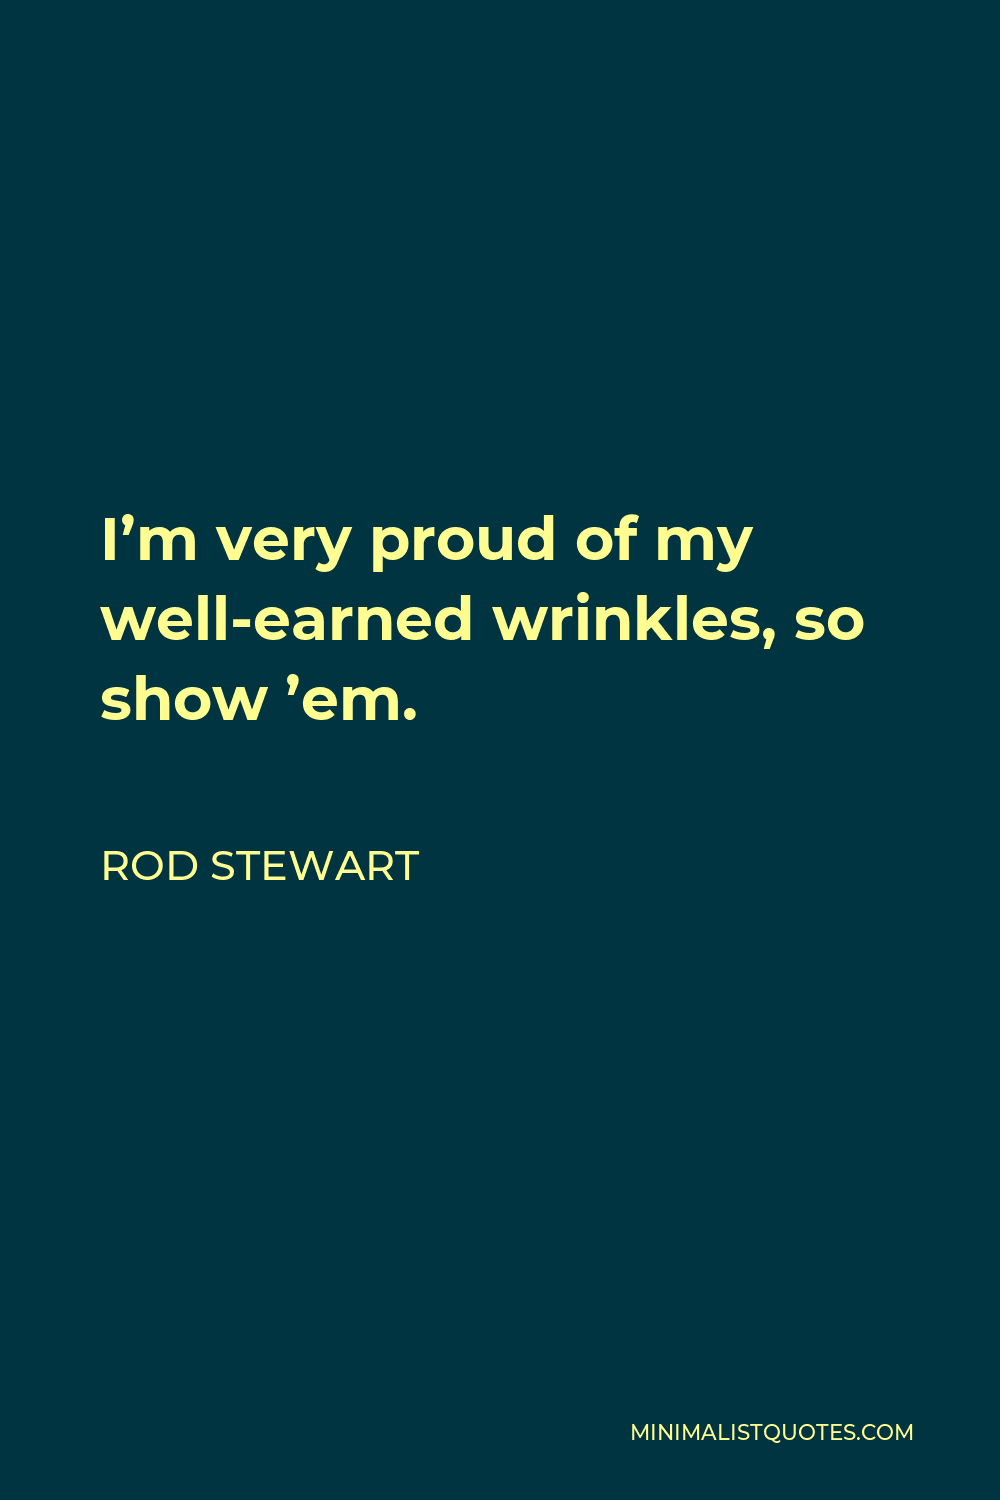 Rod Stewart Quote - I'm very proud of my well-earned wrinkles, so show 'em.